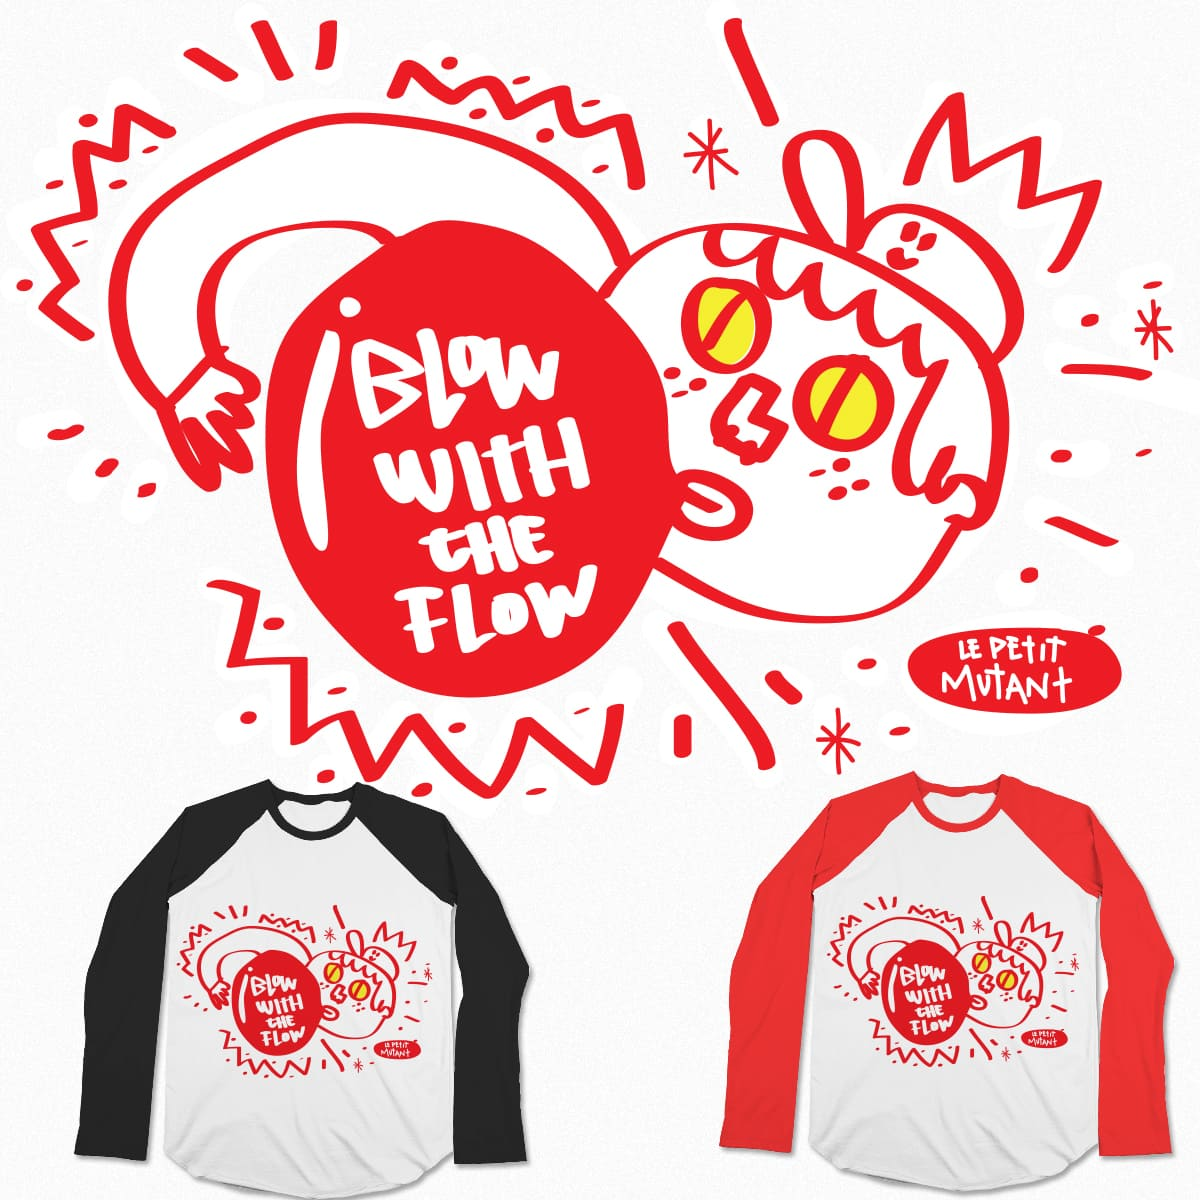 Blow with the Flow!  by lepetitmutant on Threadless